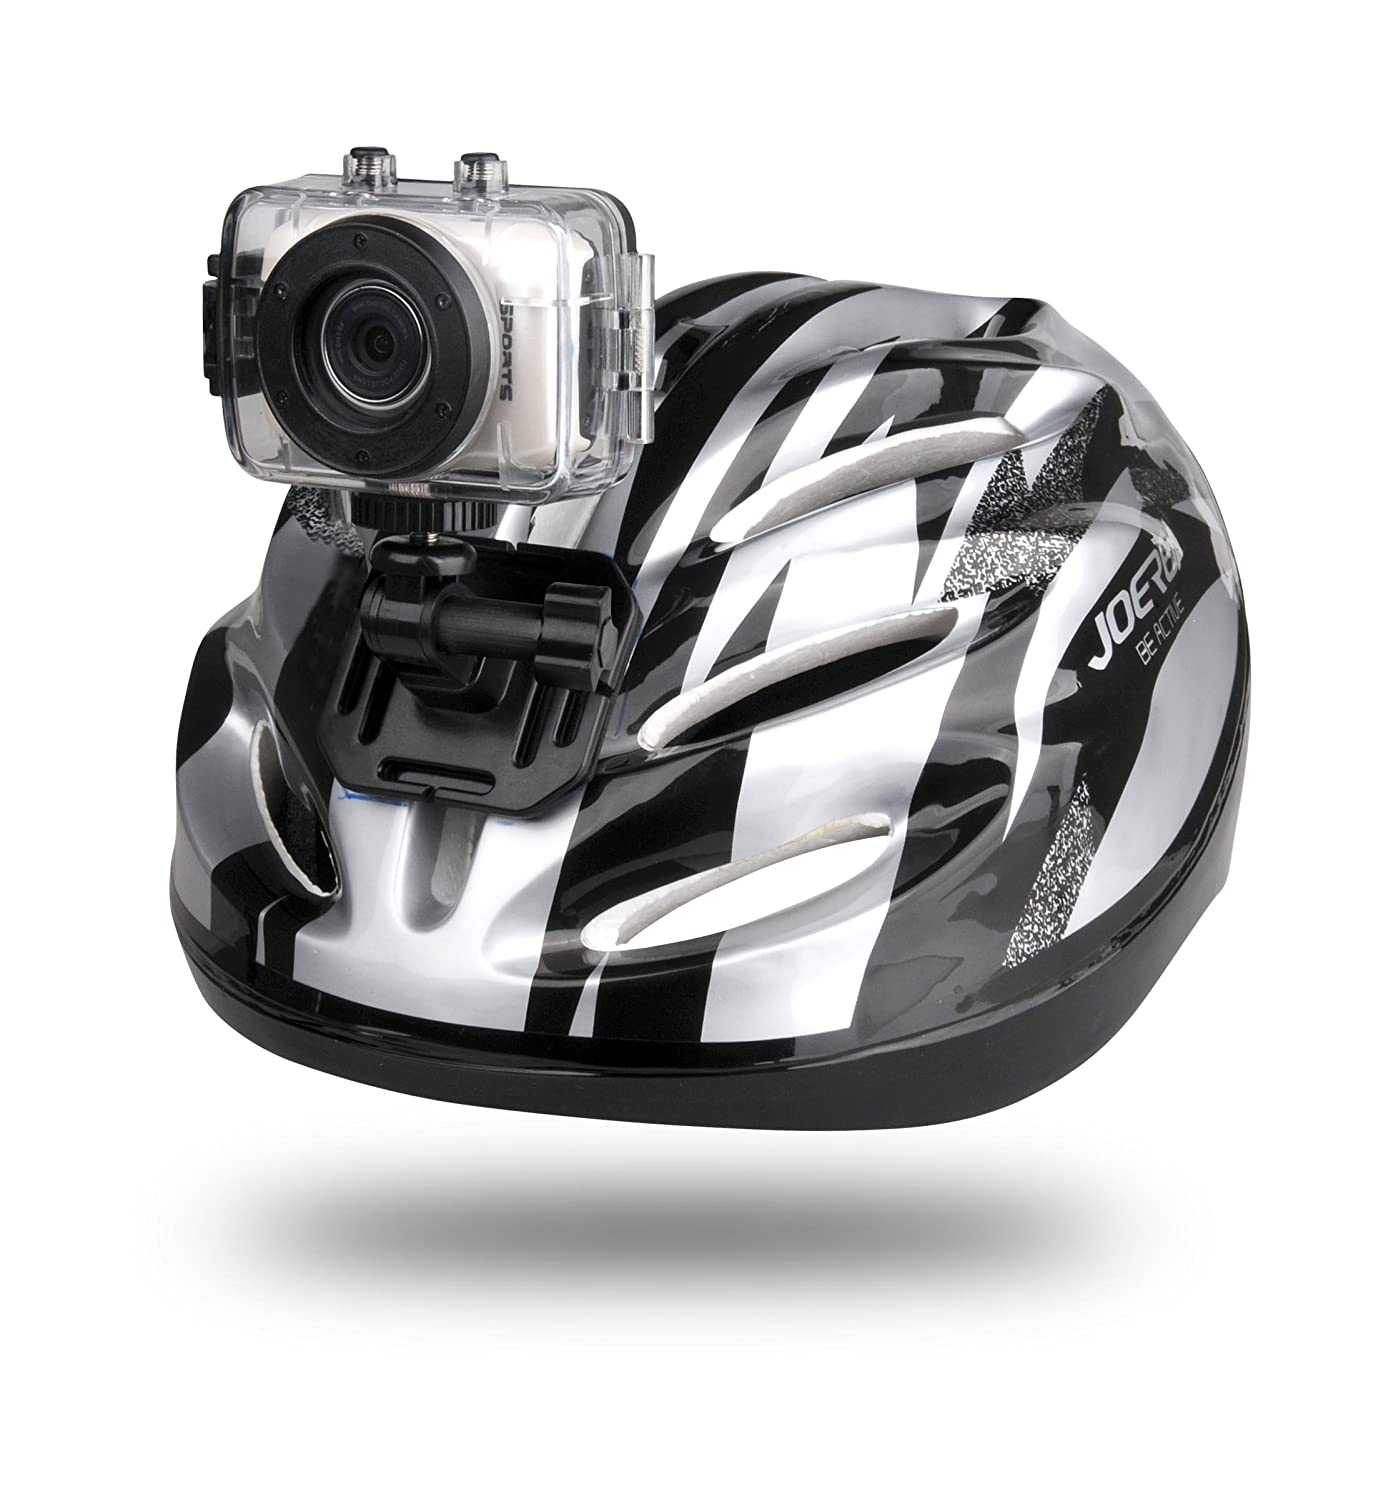 Gear-Pro High-Definition Sport Action Camera, 720p Wide-Angle Camcorder With 2.0 Touch Screen - SD Card Slot, USB Plug And Mic - All Mounting Gear Included - For Biking, Riding, Racing, Skiing And Water Sports, Etc